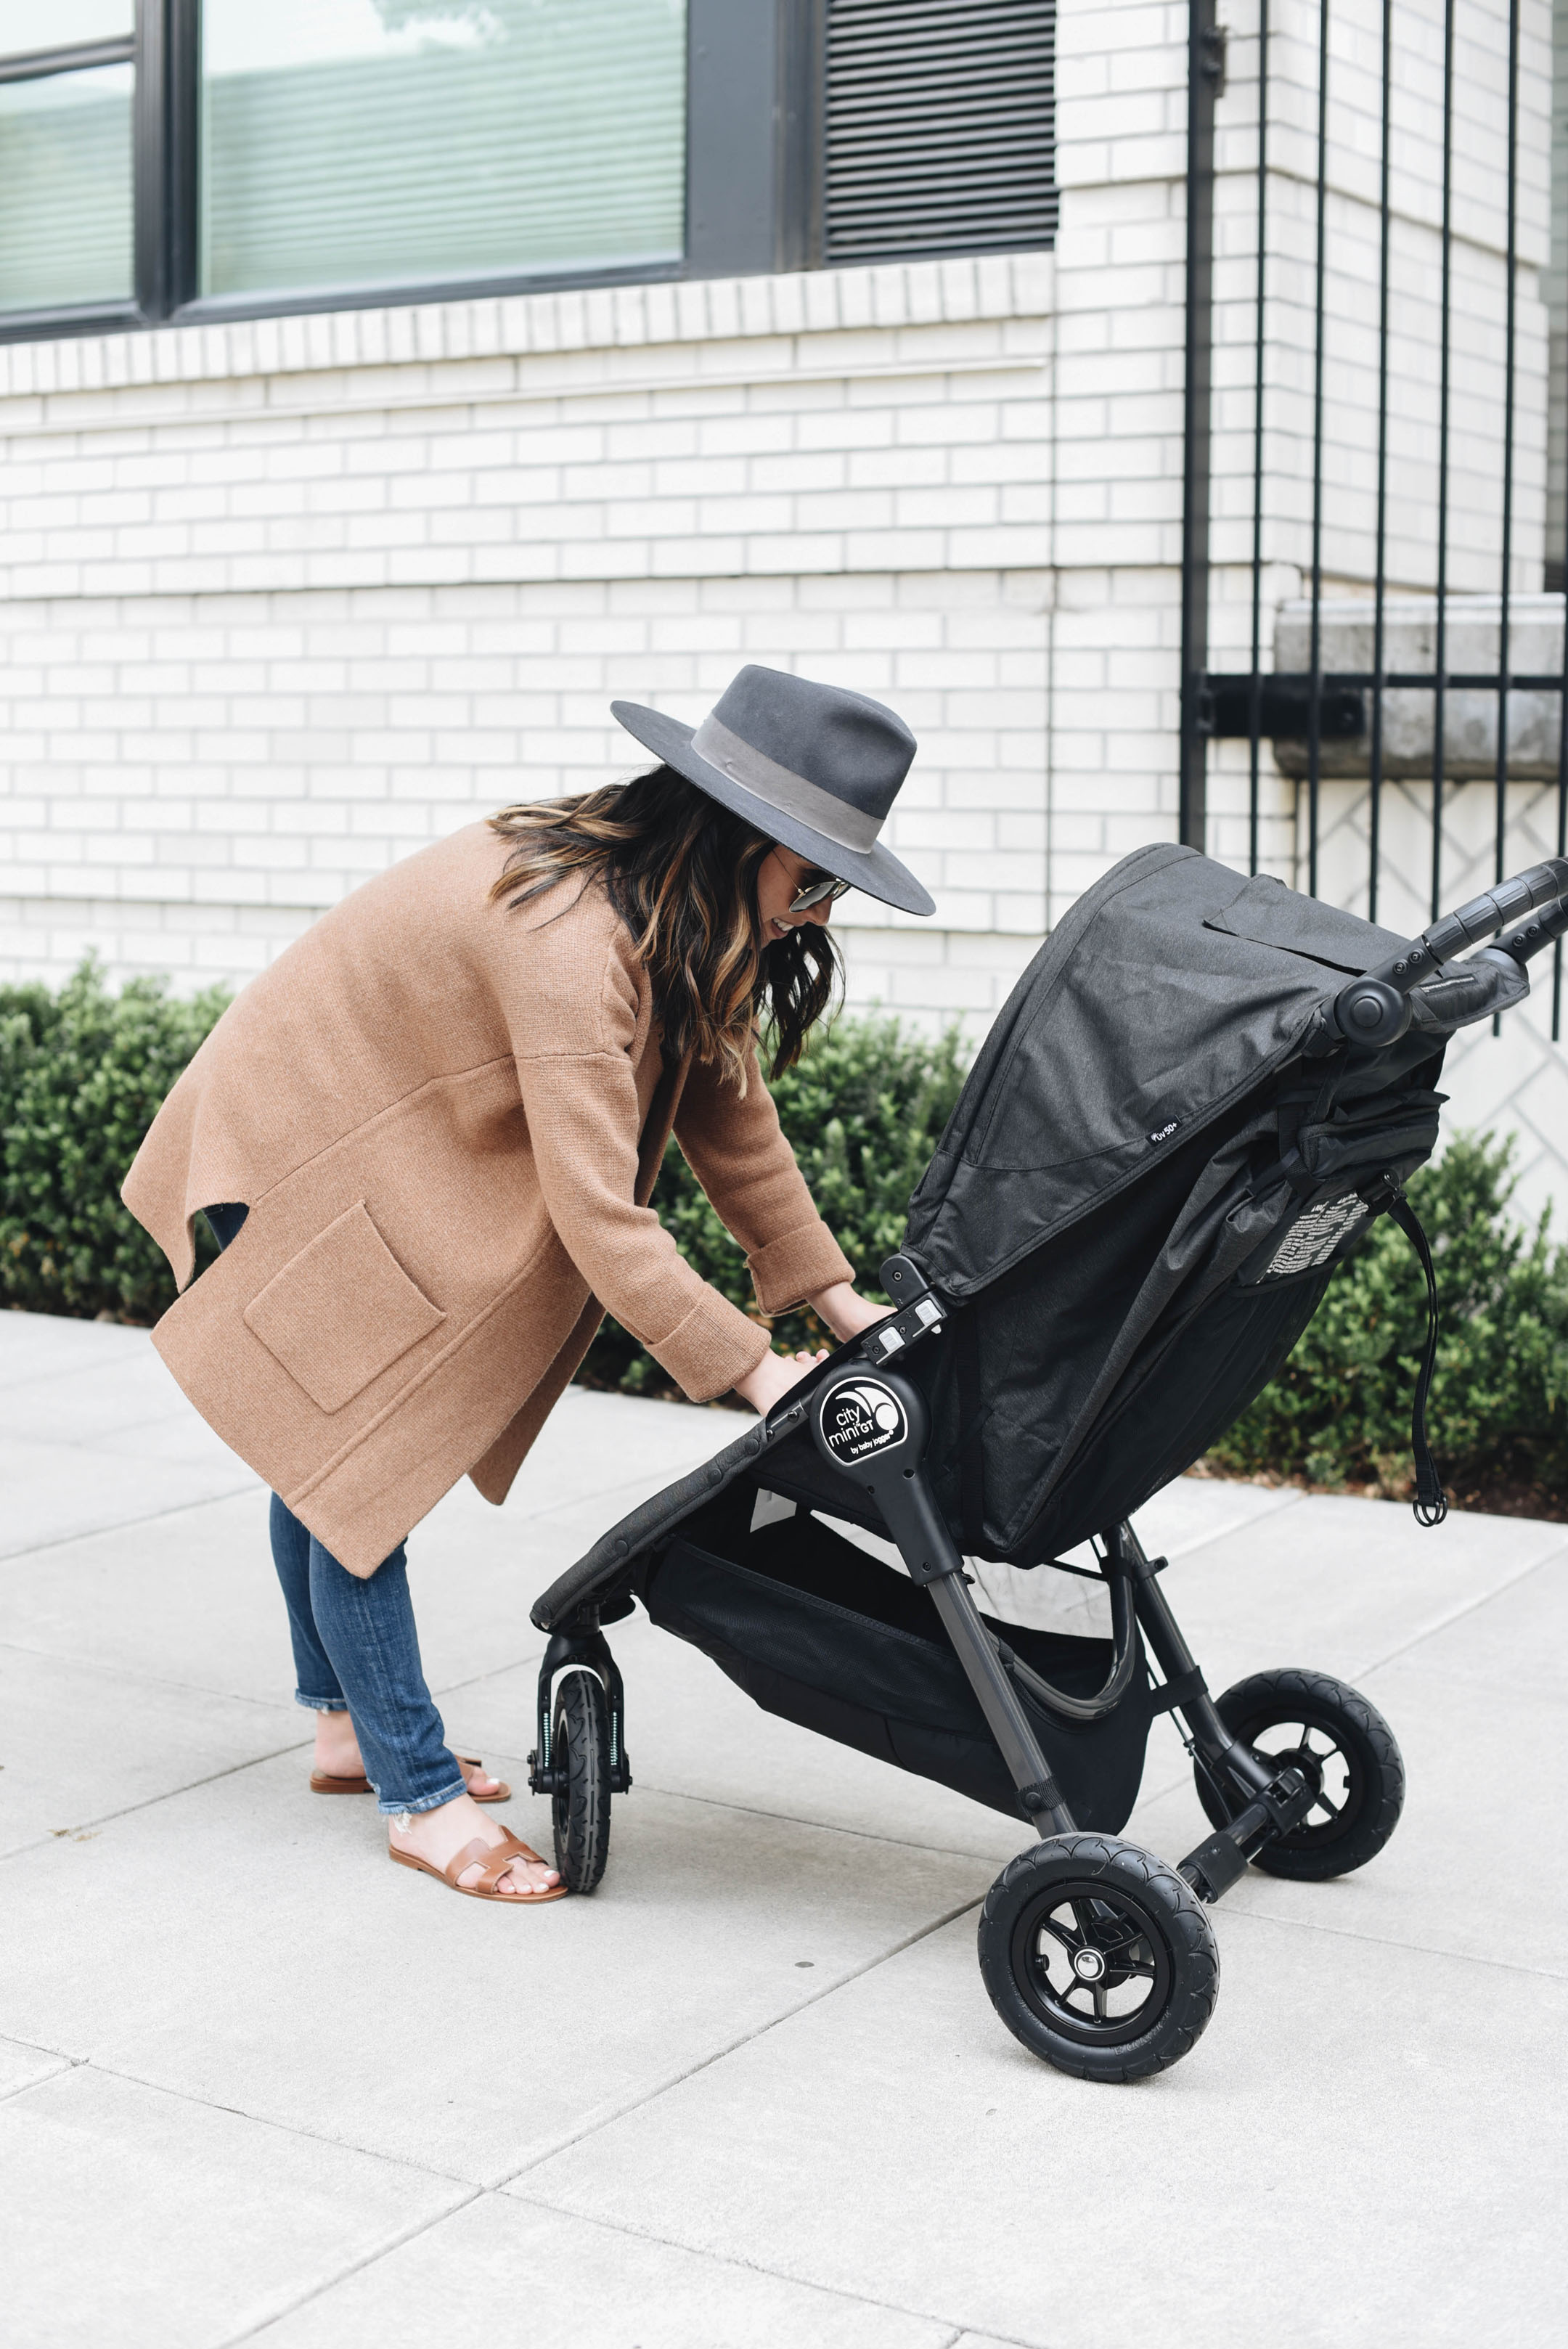 Crystalin Marie and Baby Jogger Collaboration